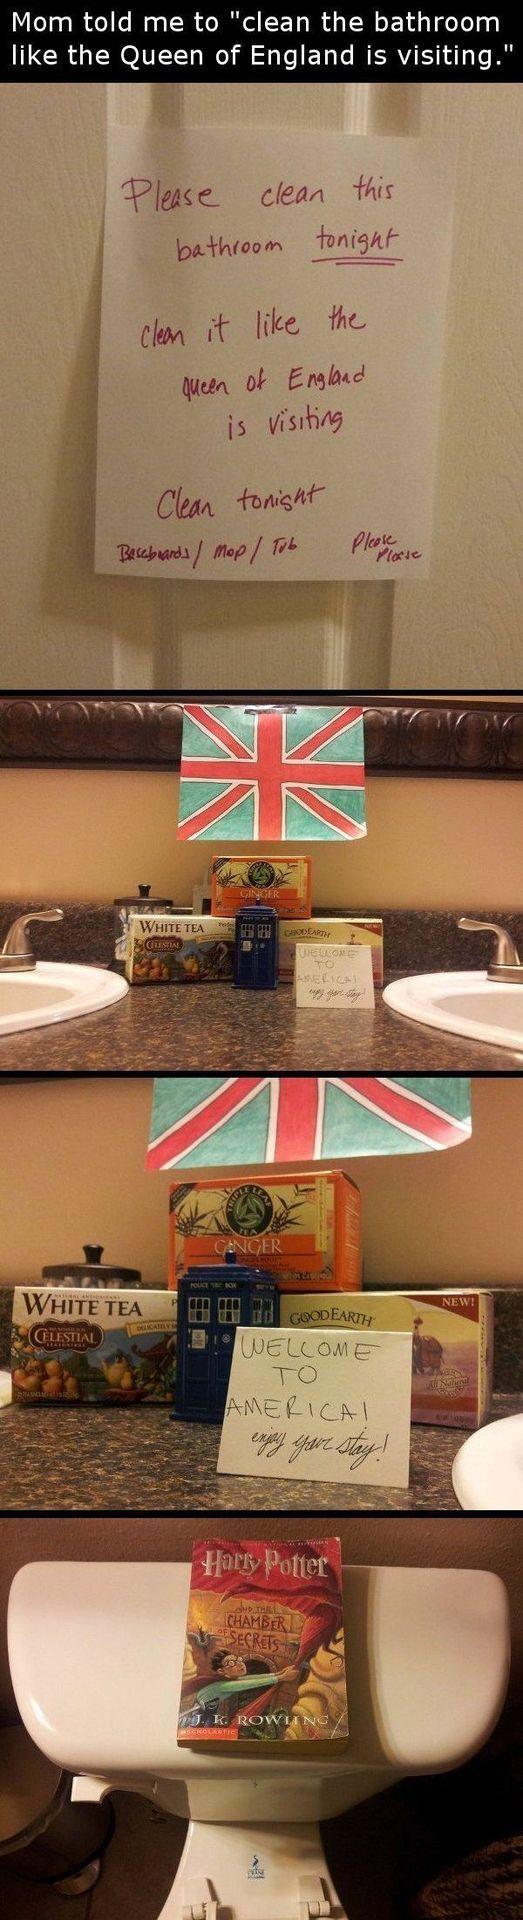 Clean the bathroom like the Queen is visiting.